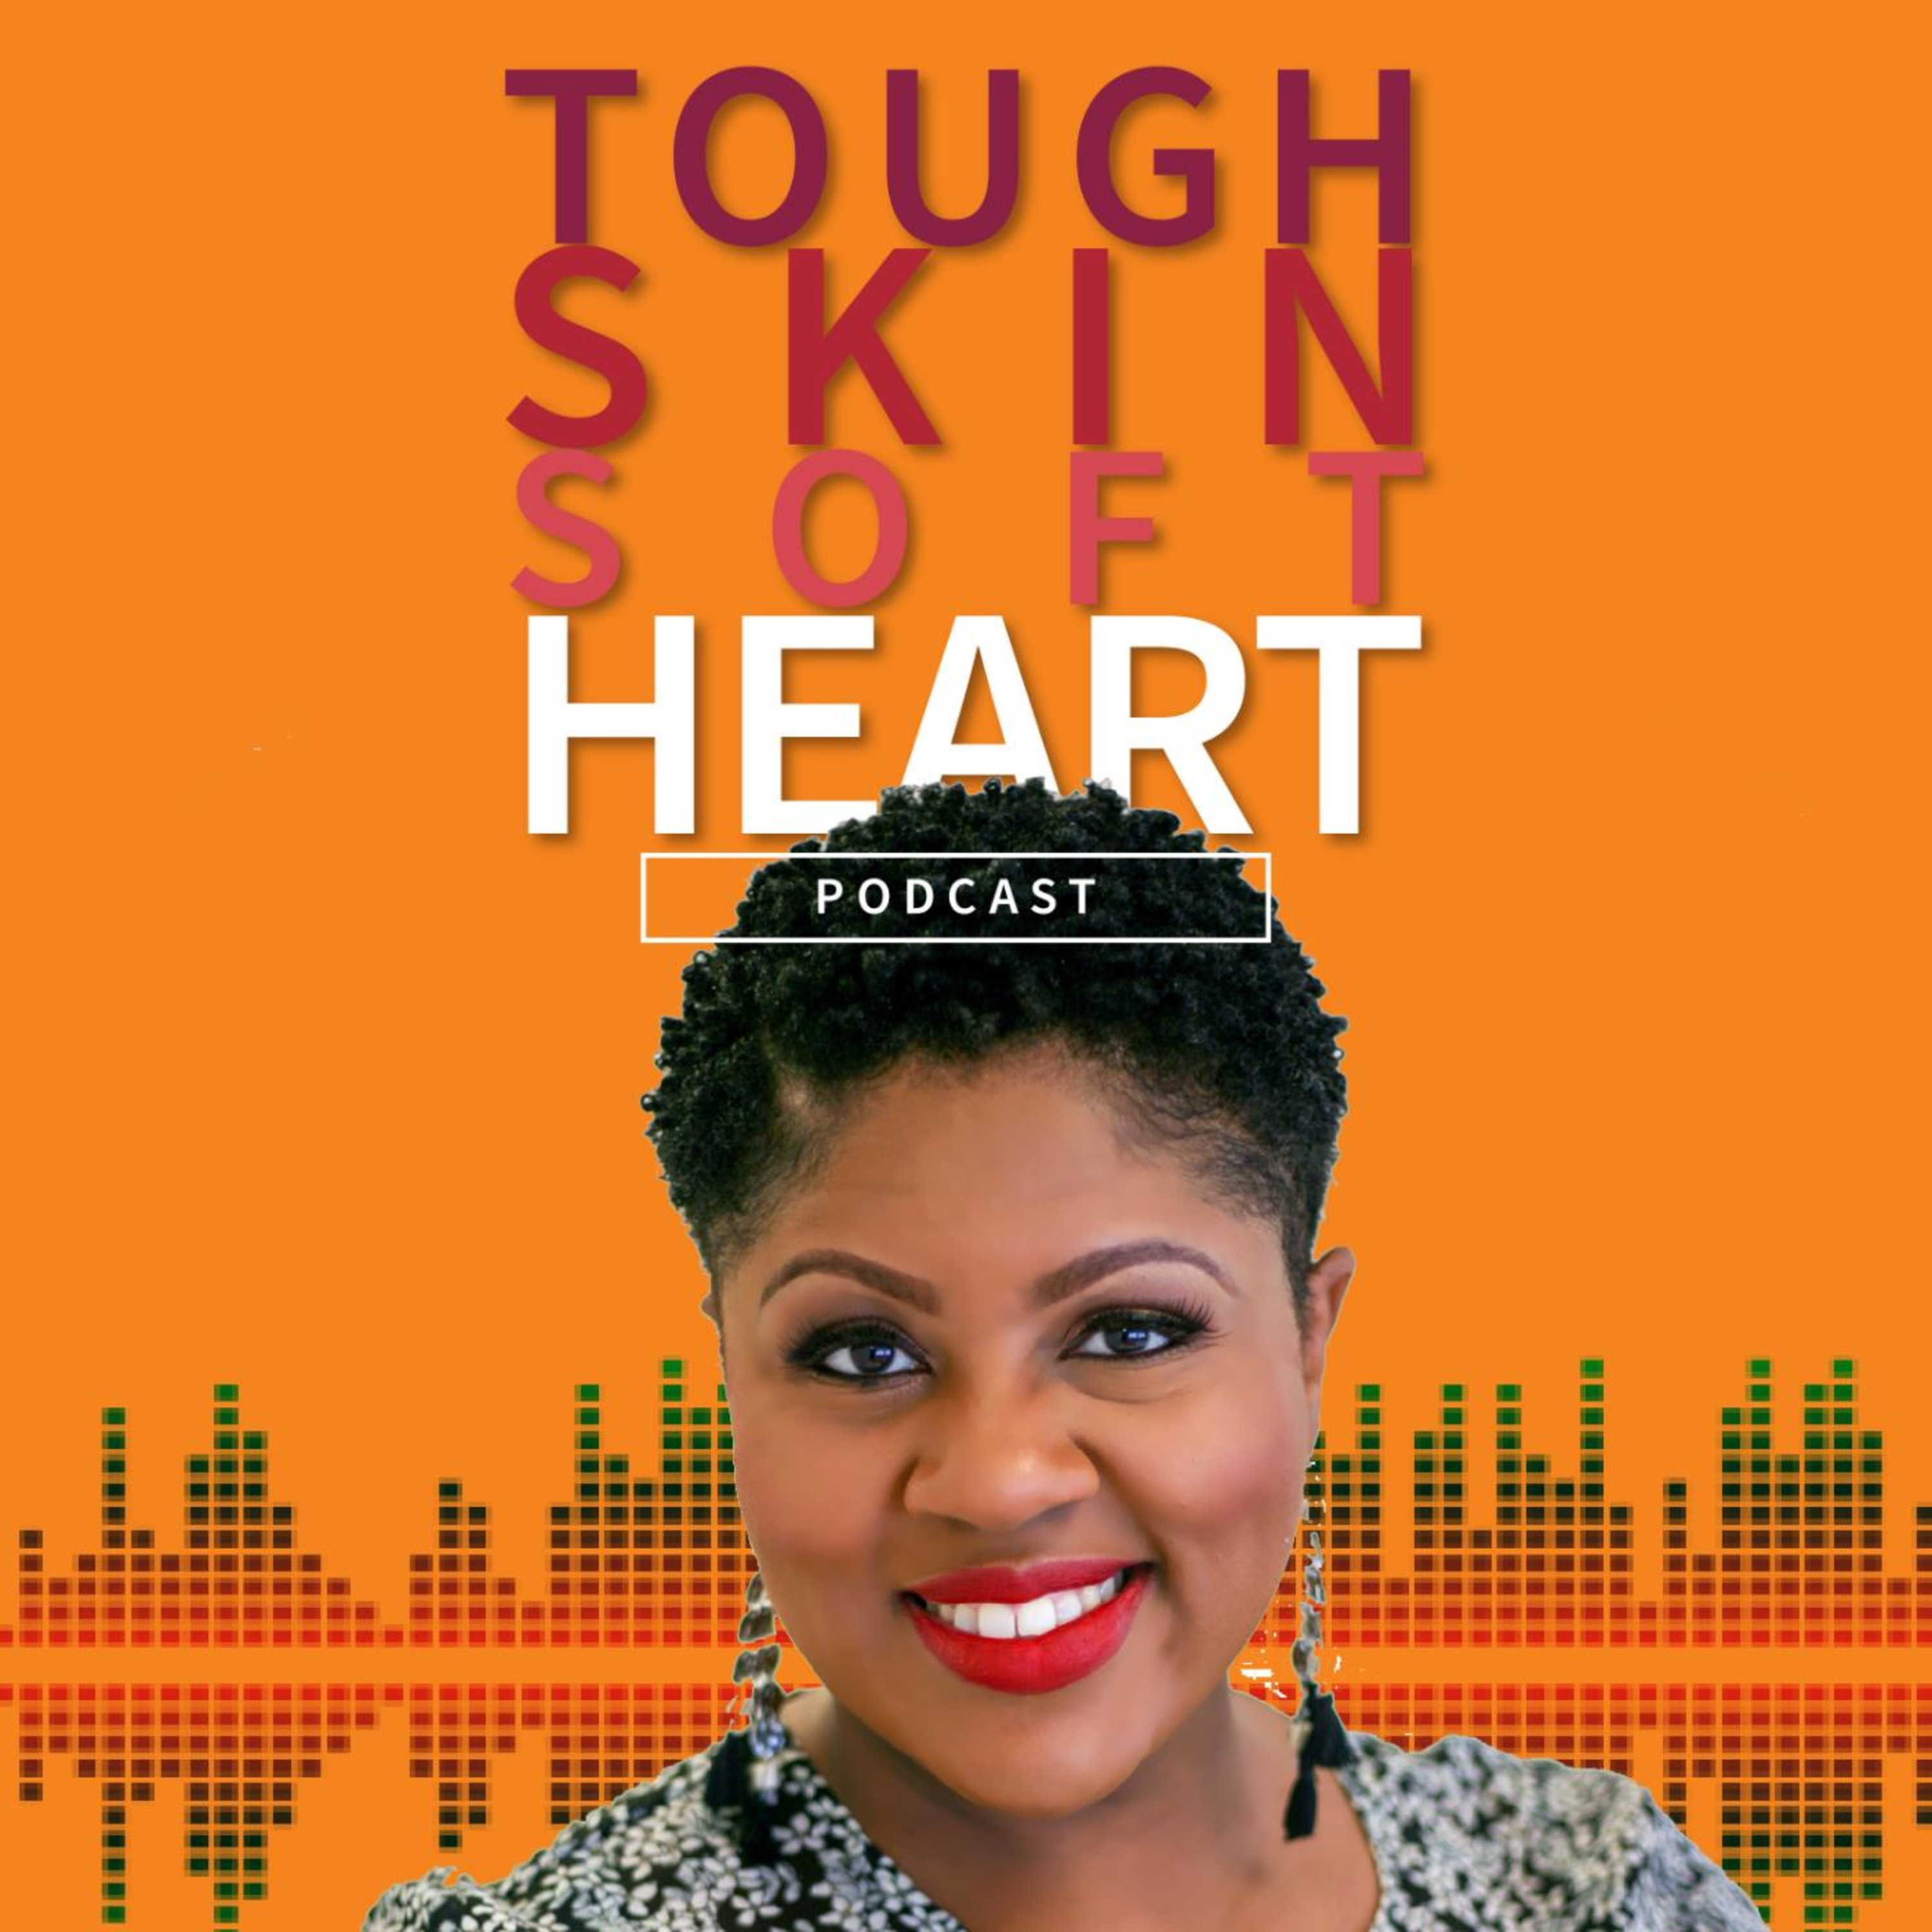 Tough Skin Soft Heart Podcast with Shannon Cohen